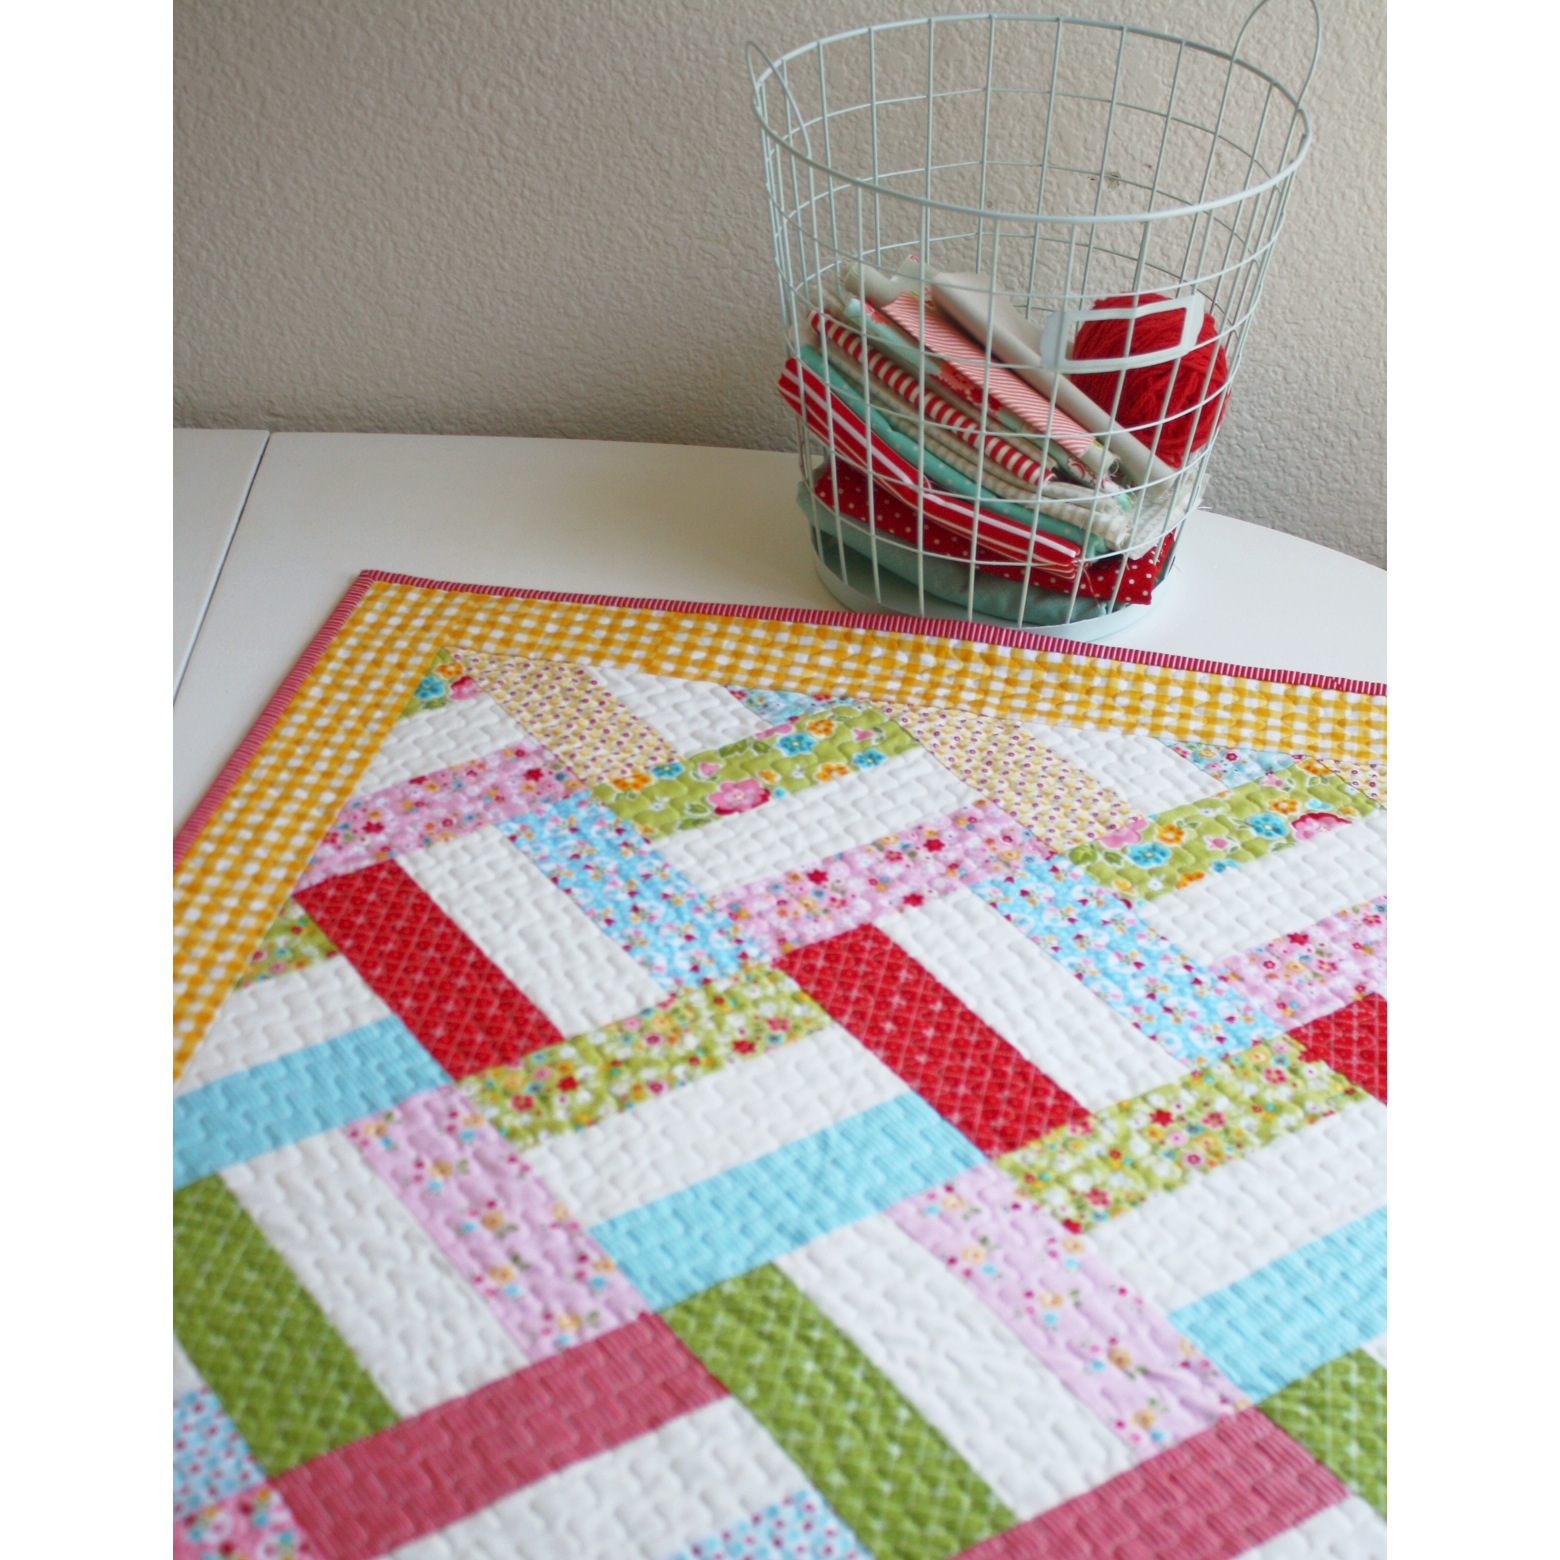 Strip Quilt Patterns For Free : Easy Strip Quilt Pattern from WoodberryWay... Quiltstory Bloglovin